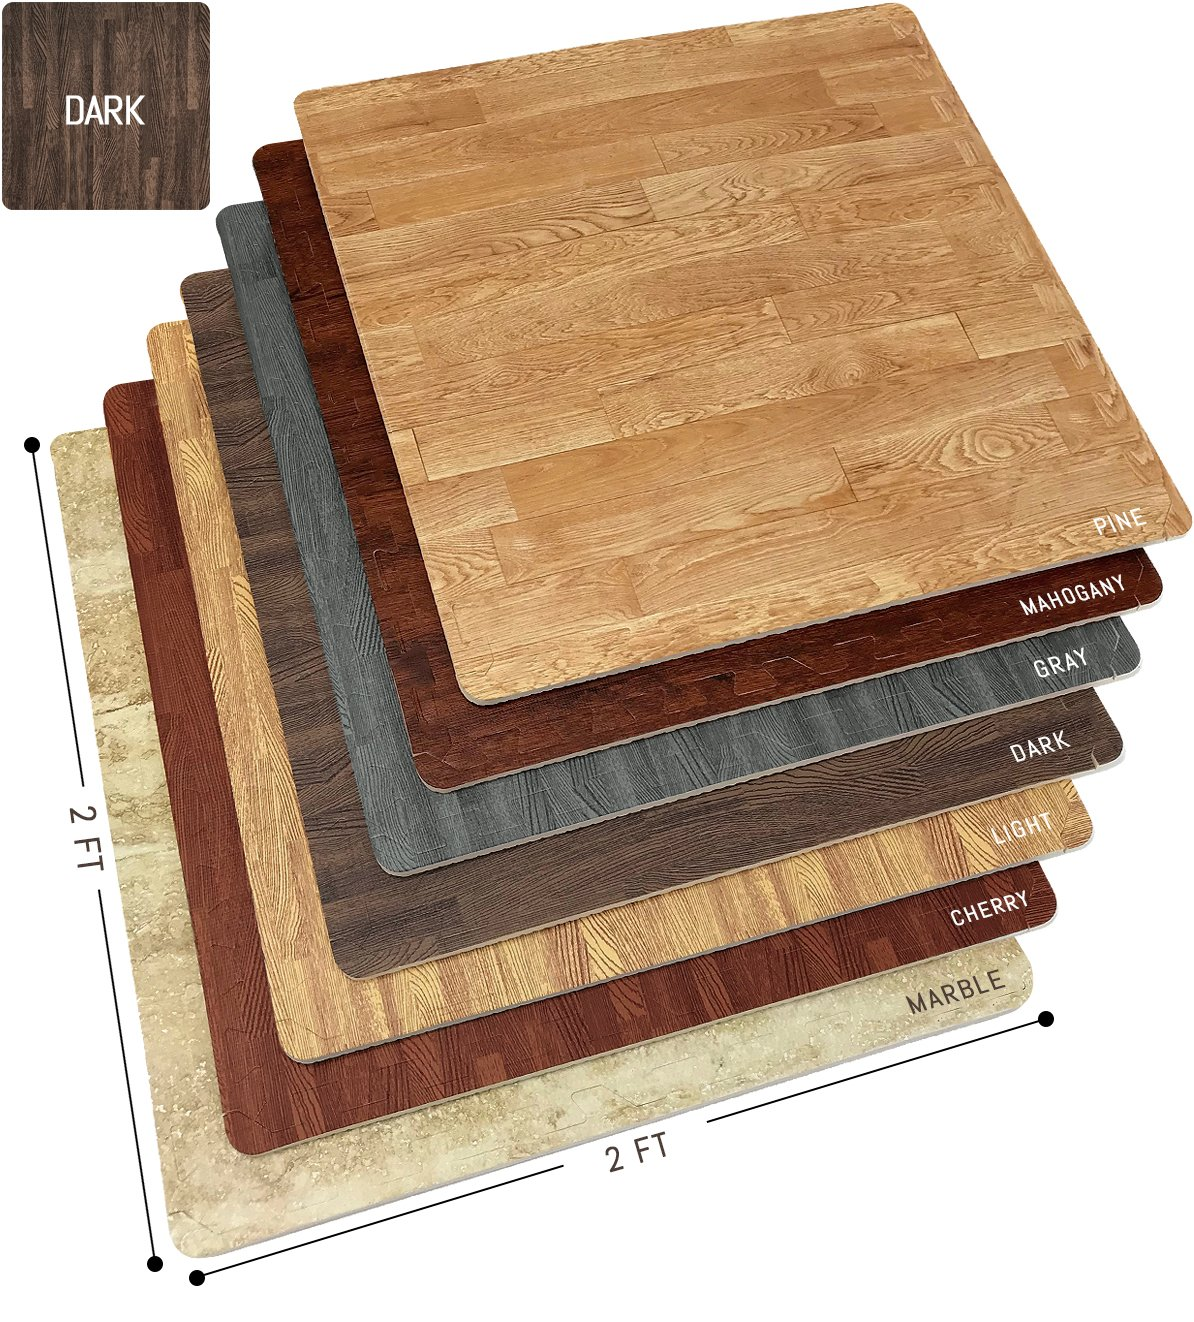 Sorbus Wood Floor Mats Foam Interlocking Wood Mats Each Tile Measures 4 Square Feet 3/8-Inch Thick Puzzle Wood Tiles with Borders for Home Office Playroom Basement (4 Tiles 16 Sq ft Wood Grain - Dark)